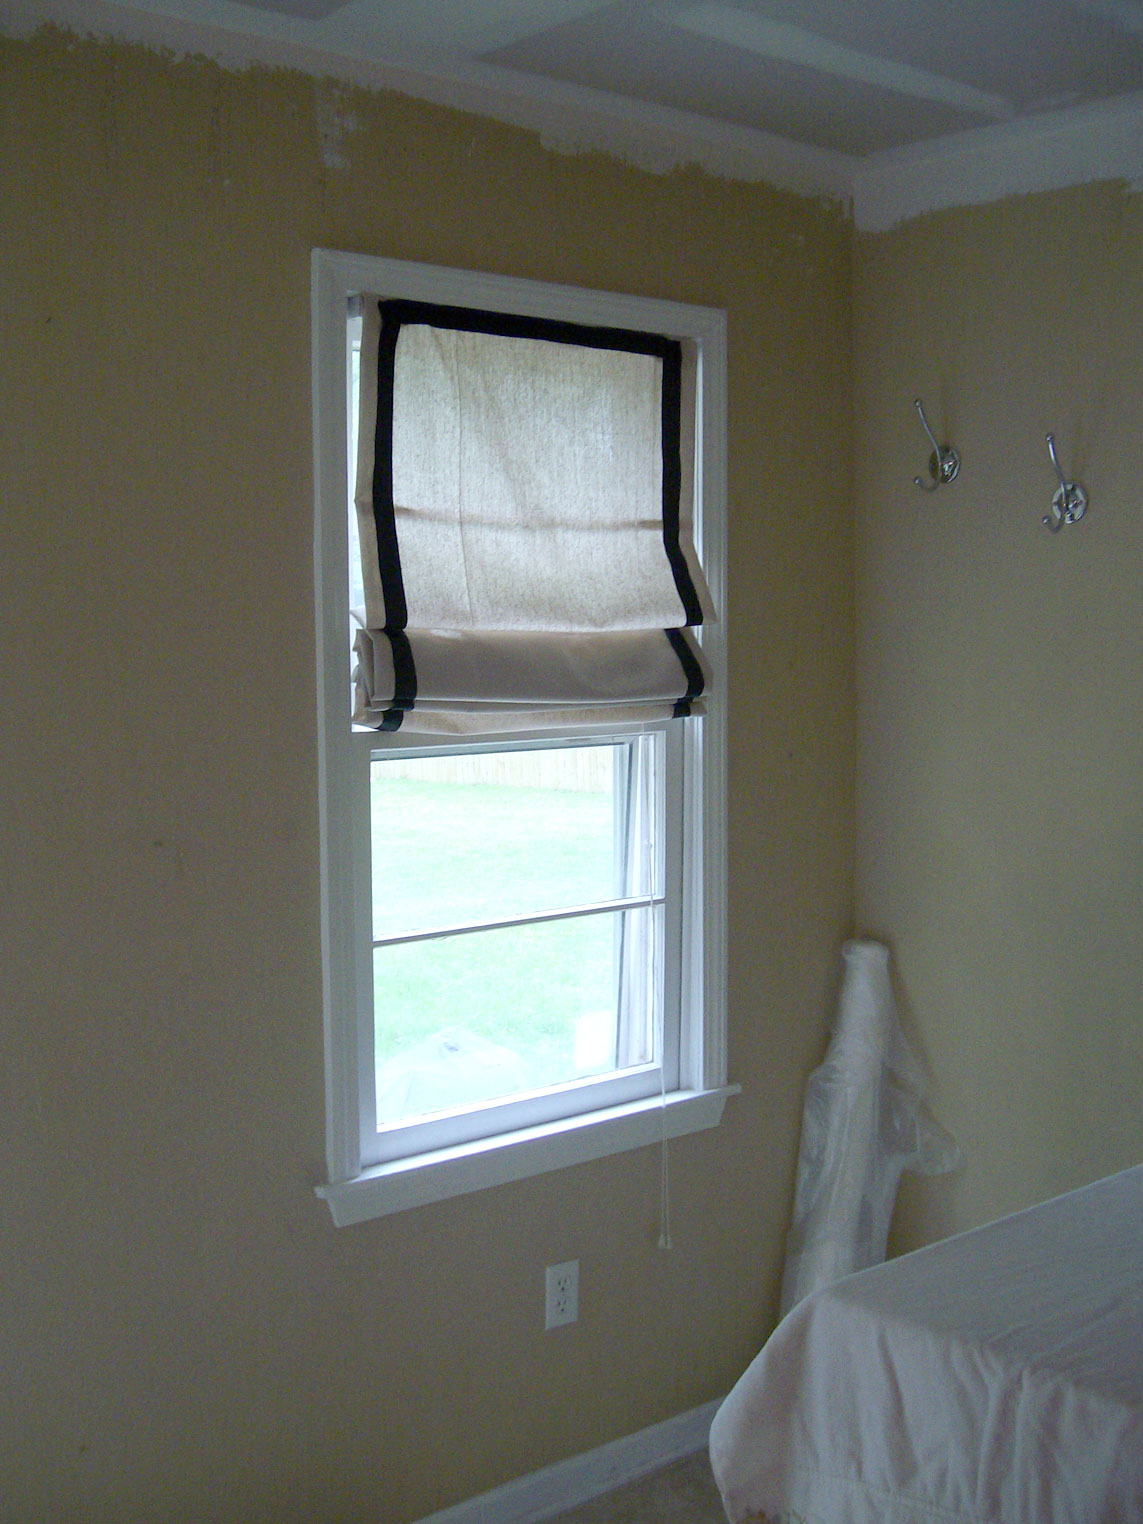 Homemade In The Heartland: DIY: Roman Shades from Mini-Blinds